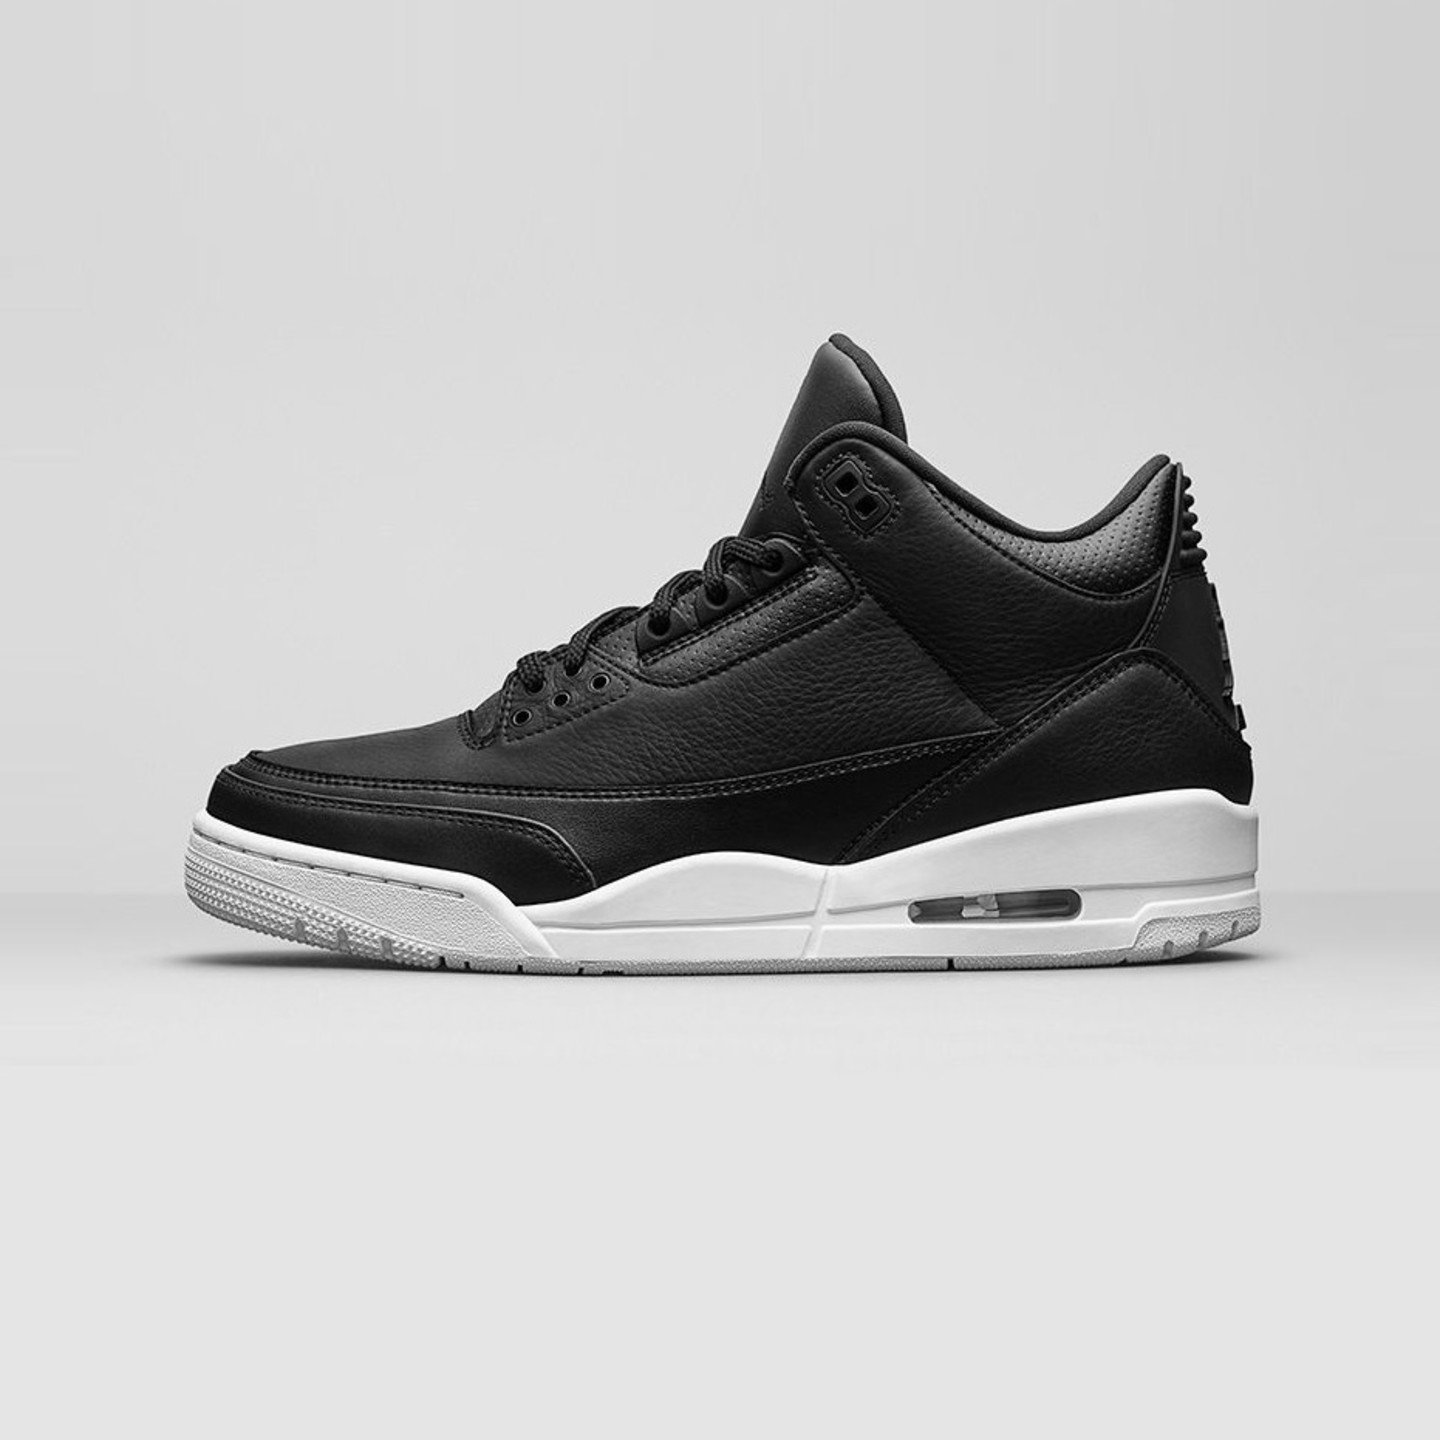 Jordan Air Jordan 3 Retro BG 'Cyber Monday' Black / White 398614-020-36.5